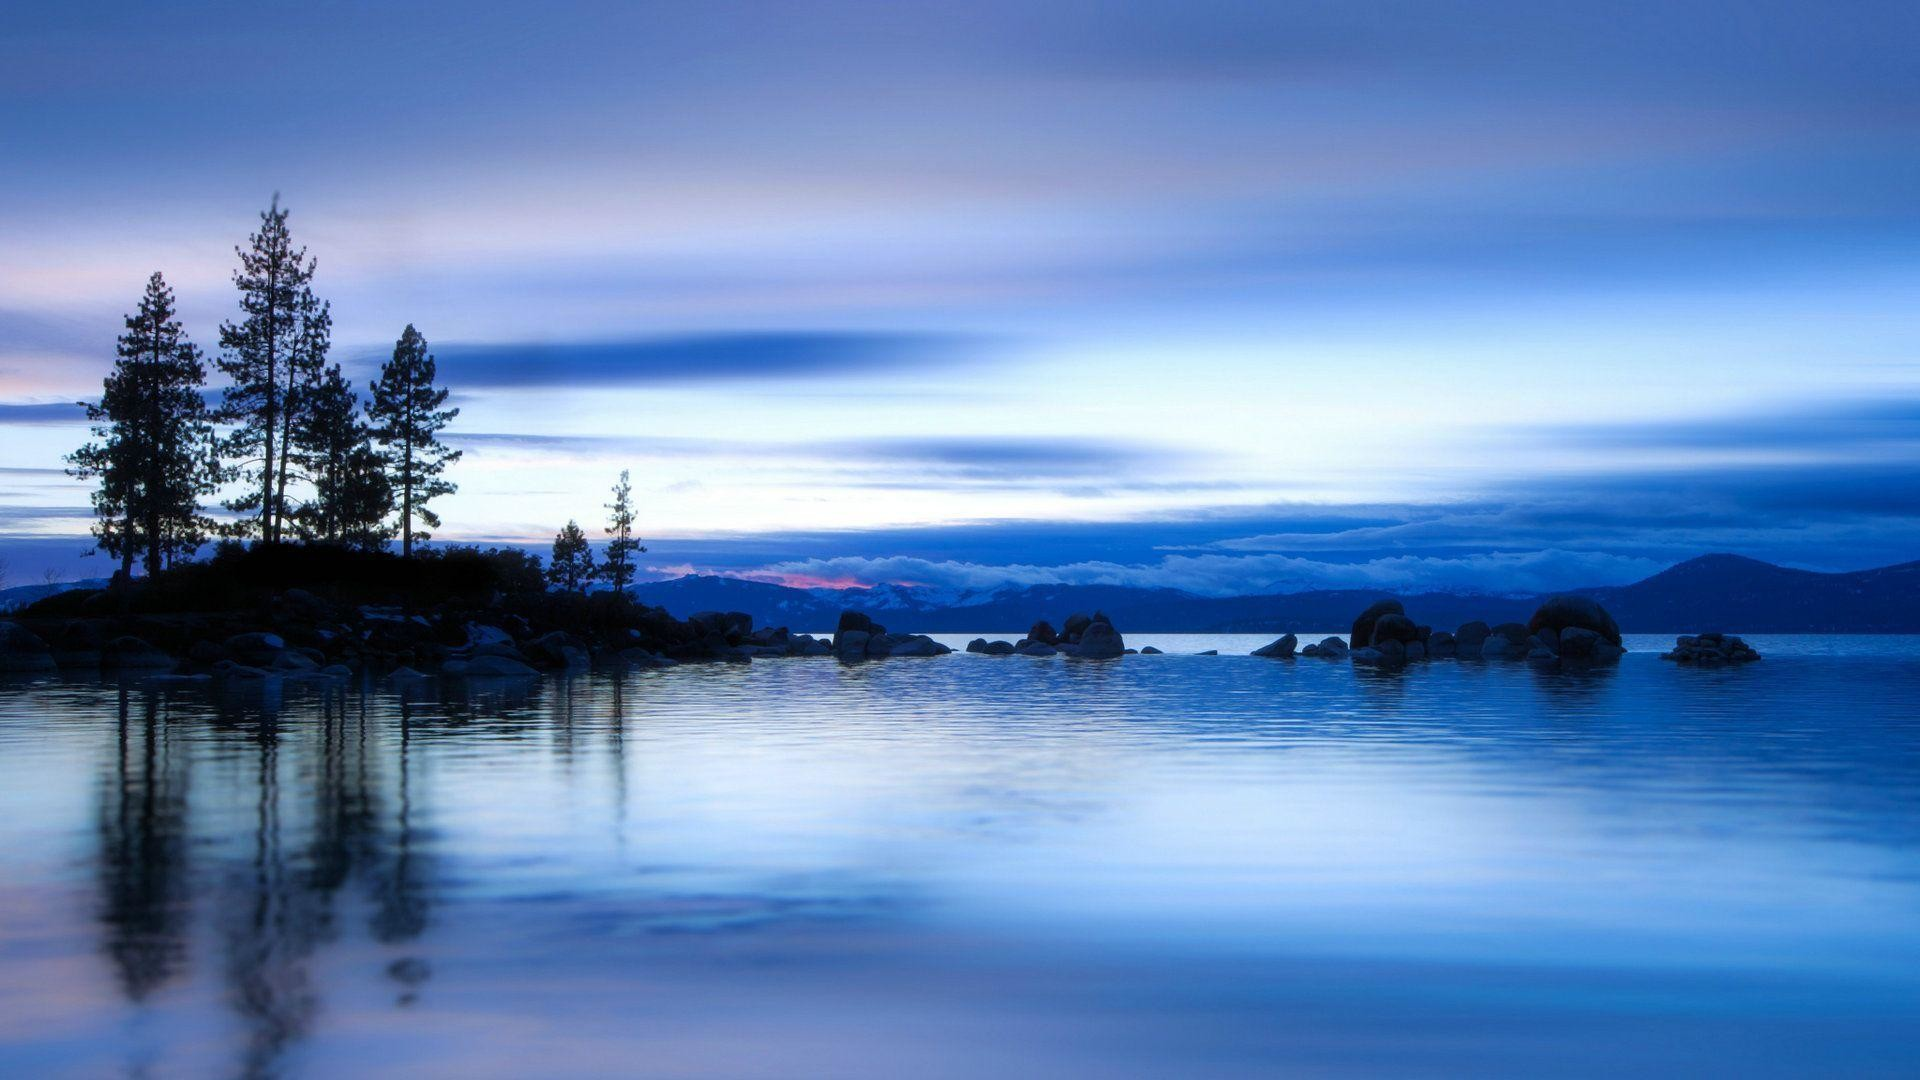 Blue Nature Wallpaper 75 Pictures